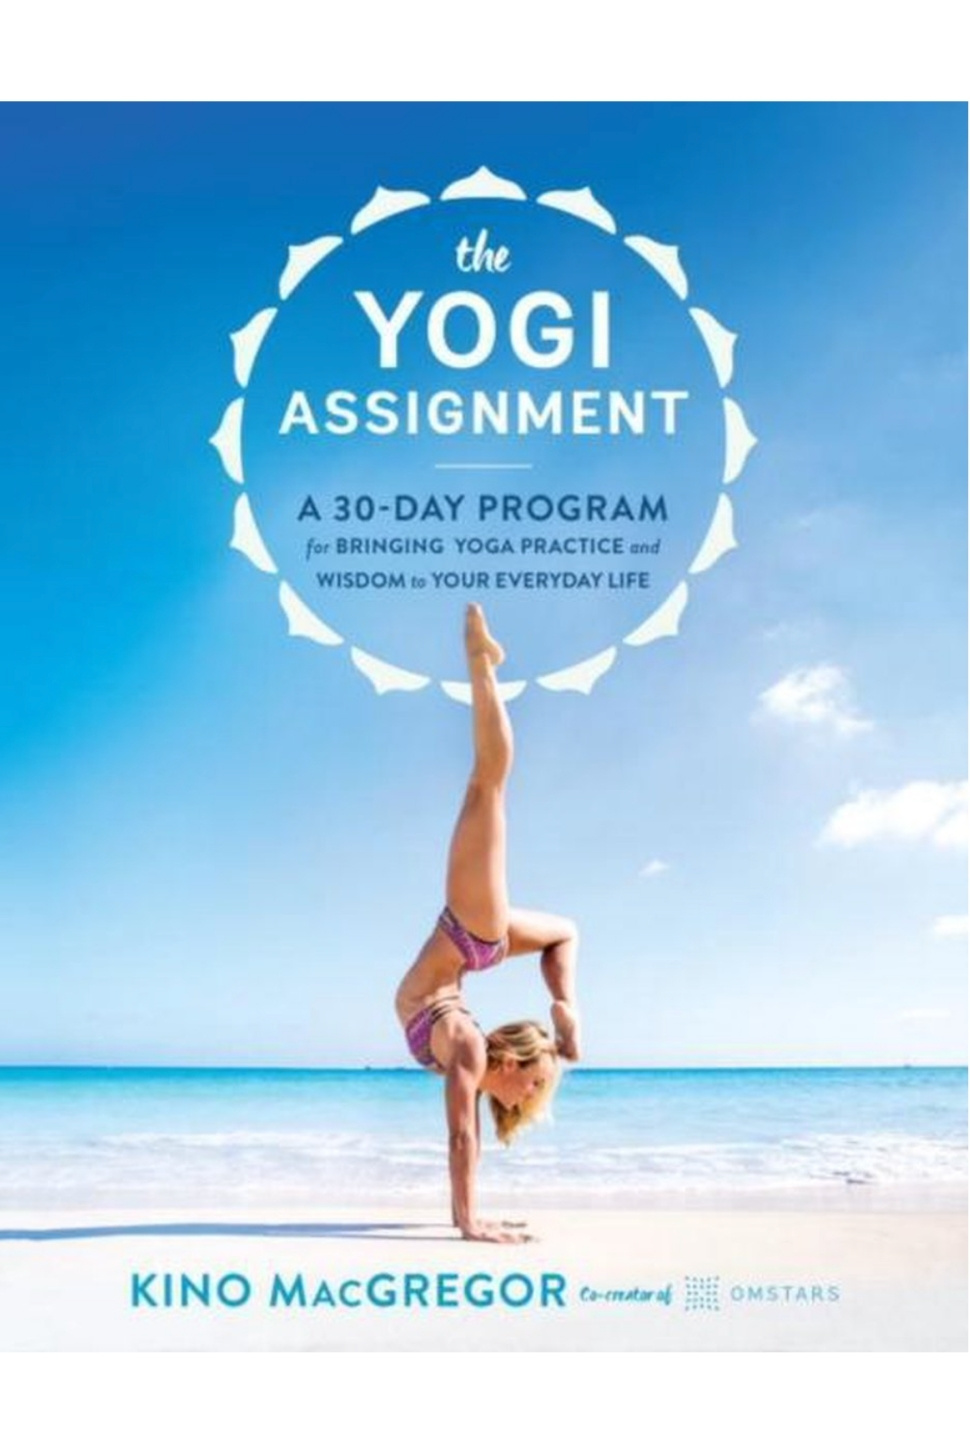 The yogi assignment, Kino MacGregor